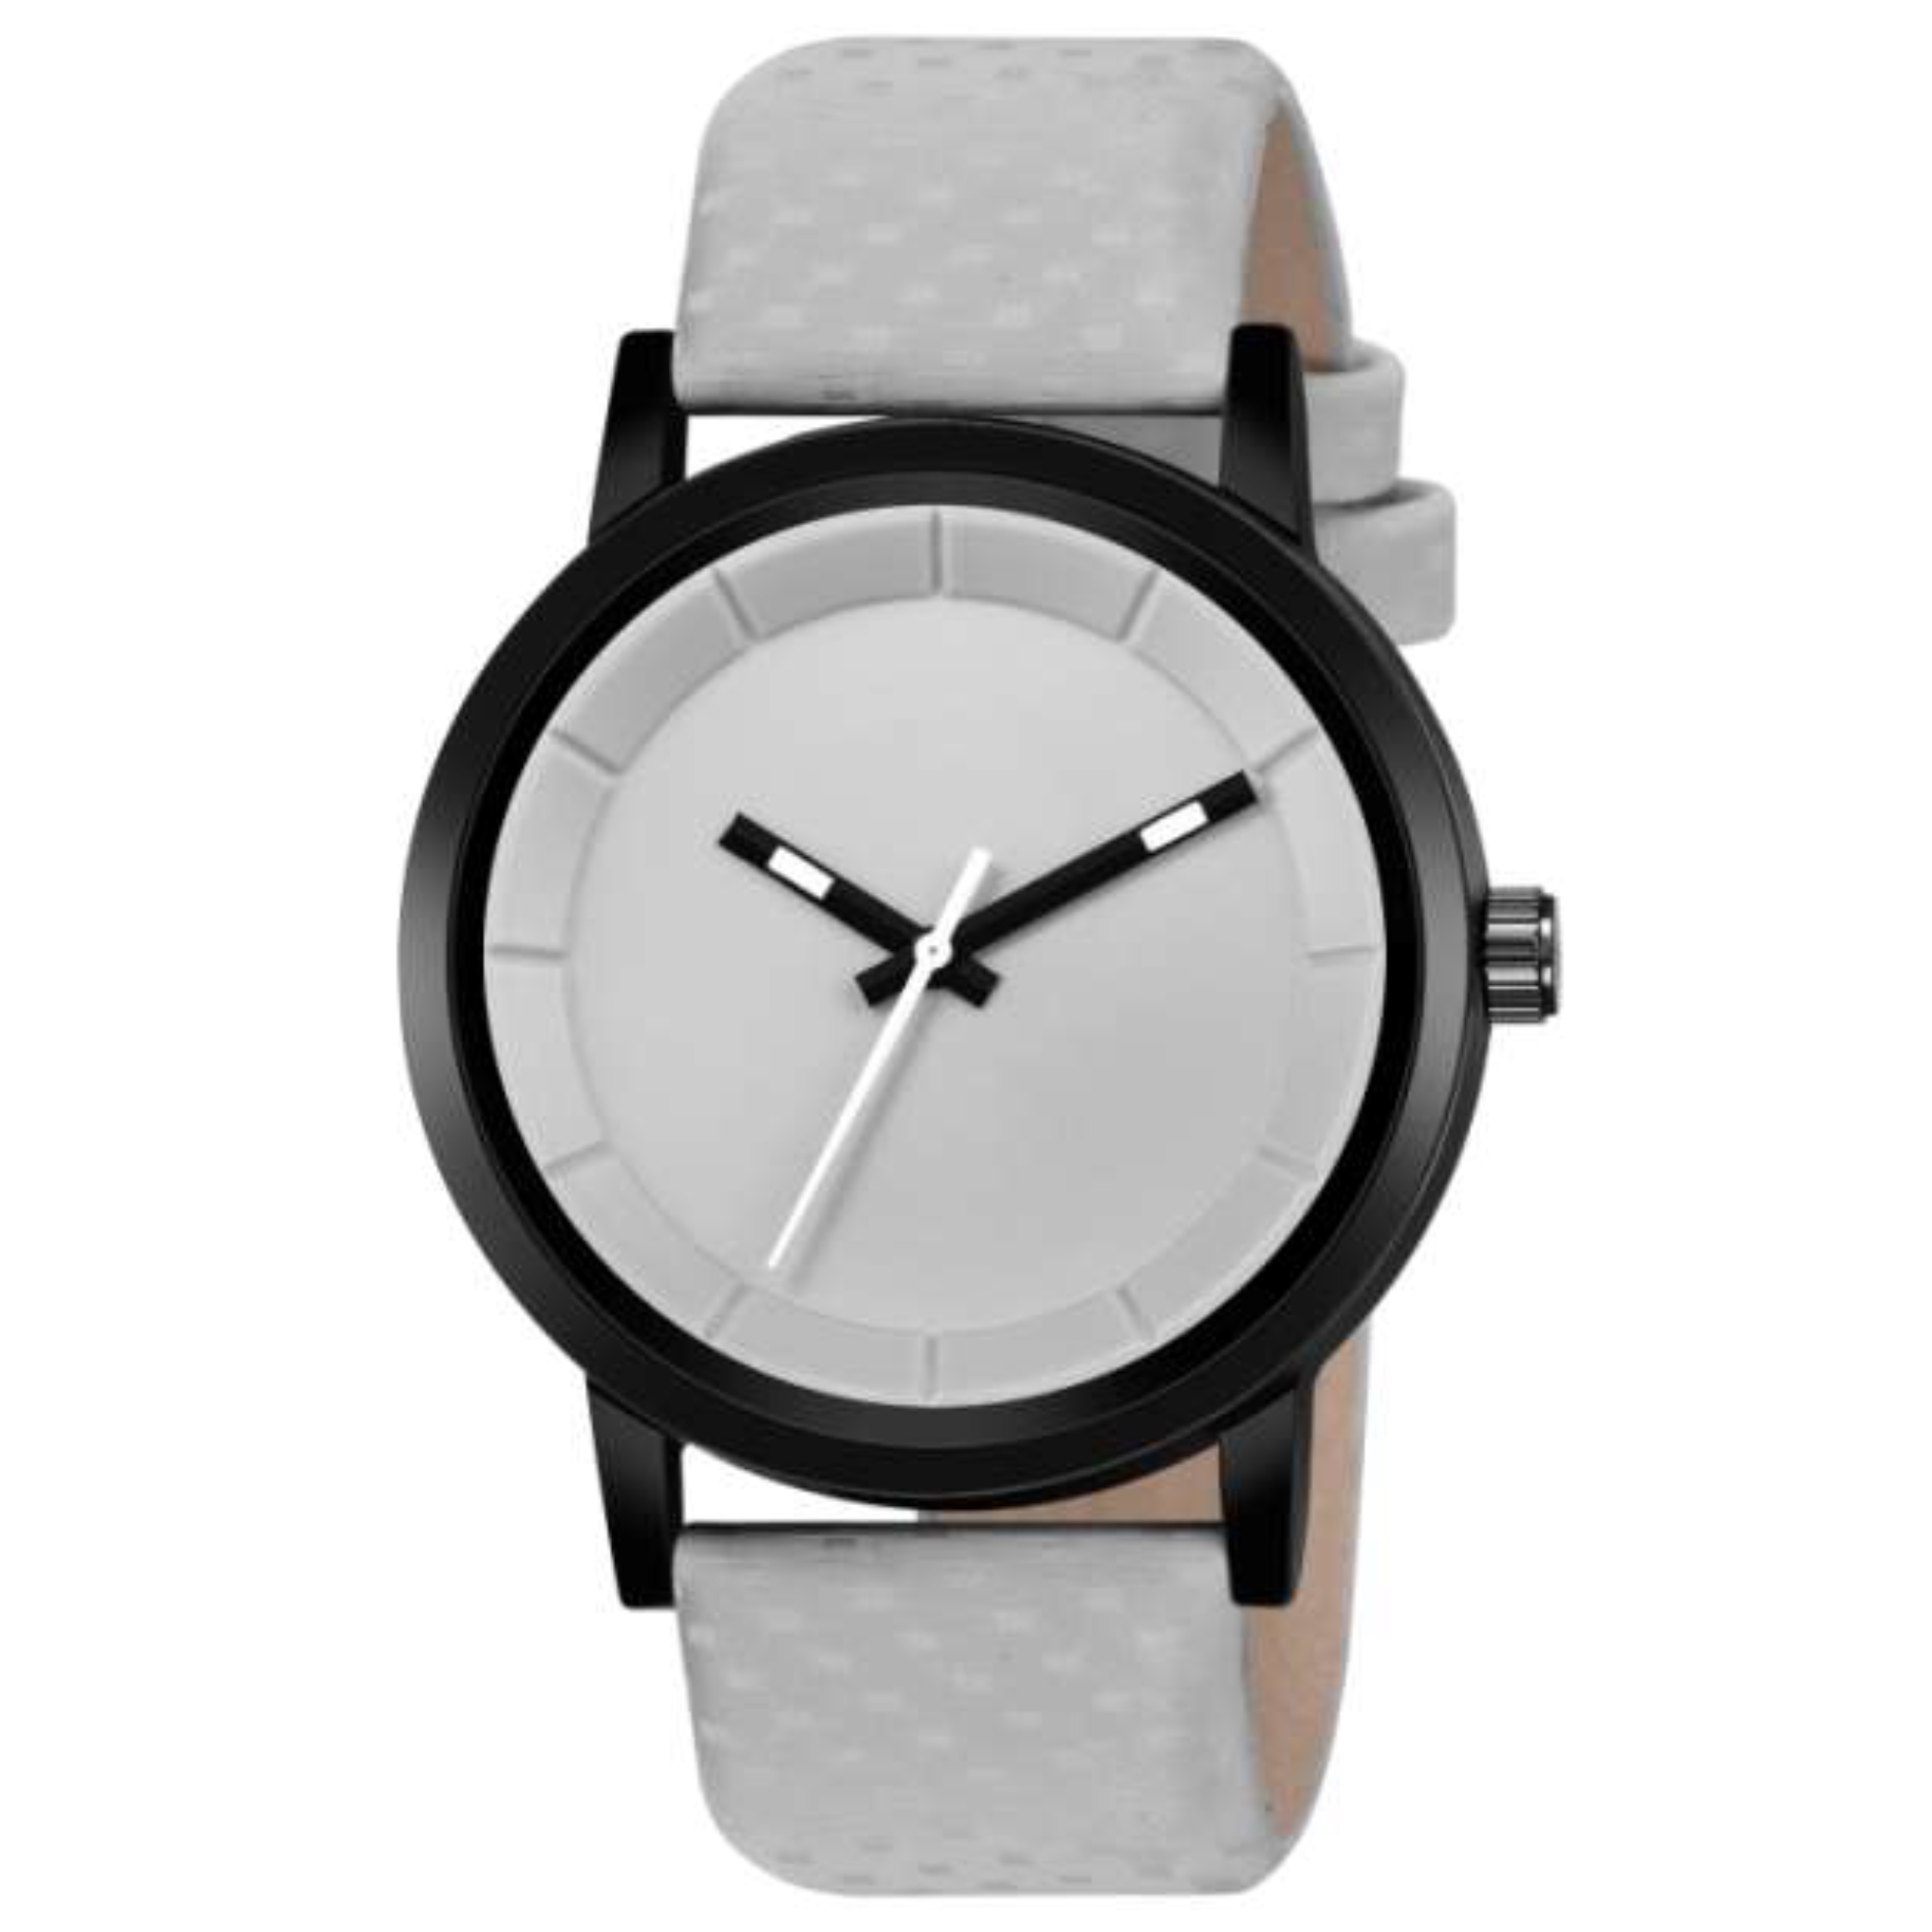 Fashion Now Casual And Office Wear Men Watch (Grey)